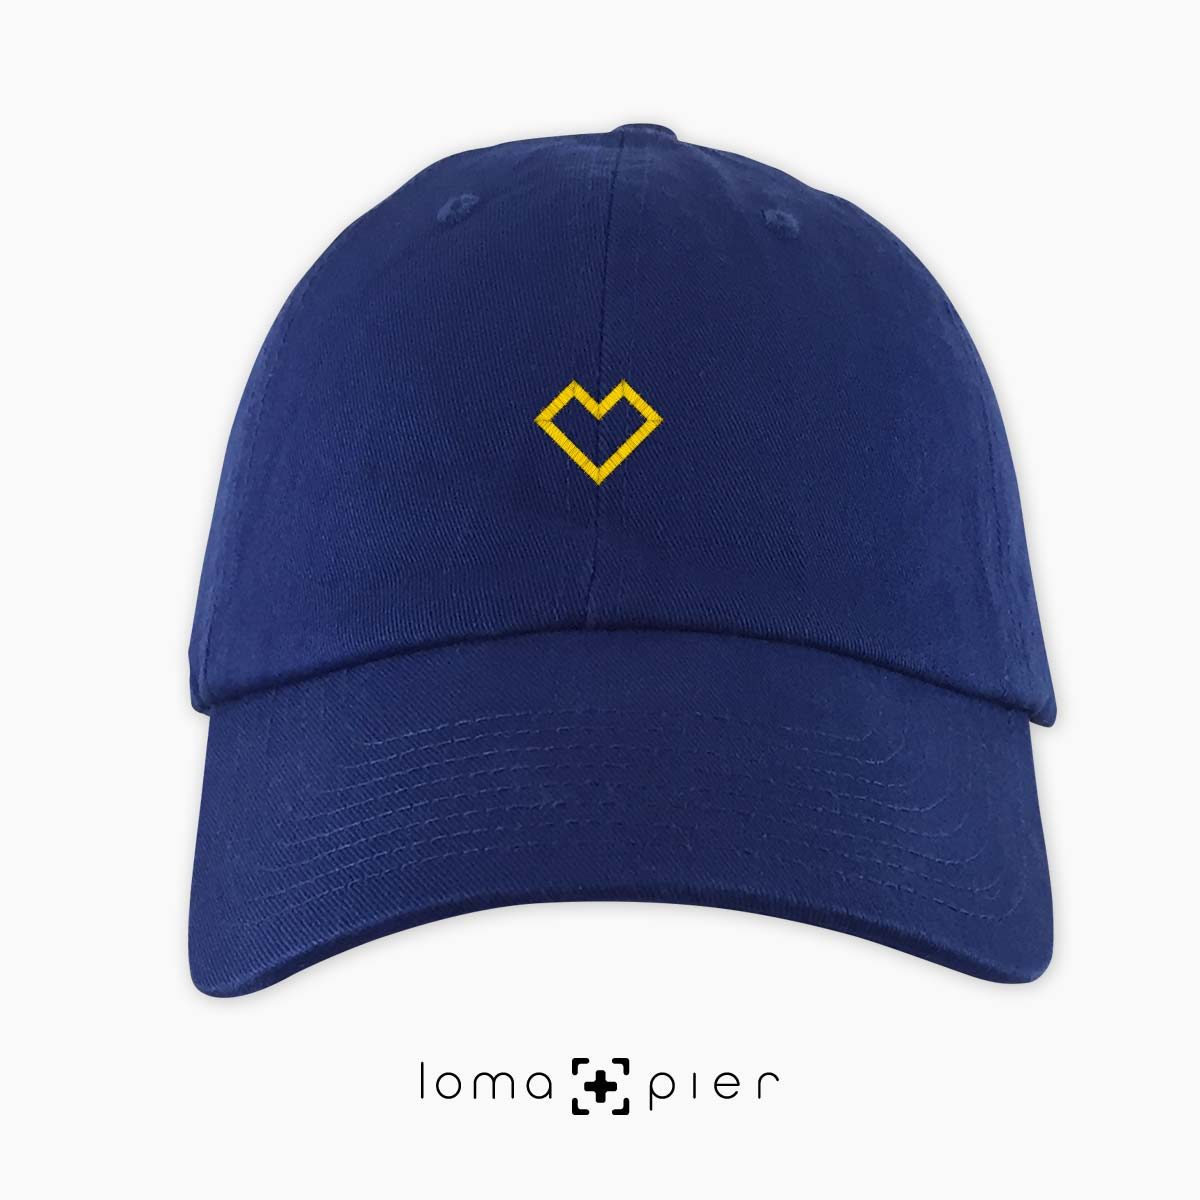 EDGY HEART icon embroidered on a royal blue unstructured dad hat with yellow thread by loma+pier hat store made in the USA